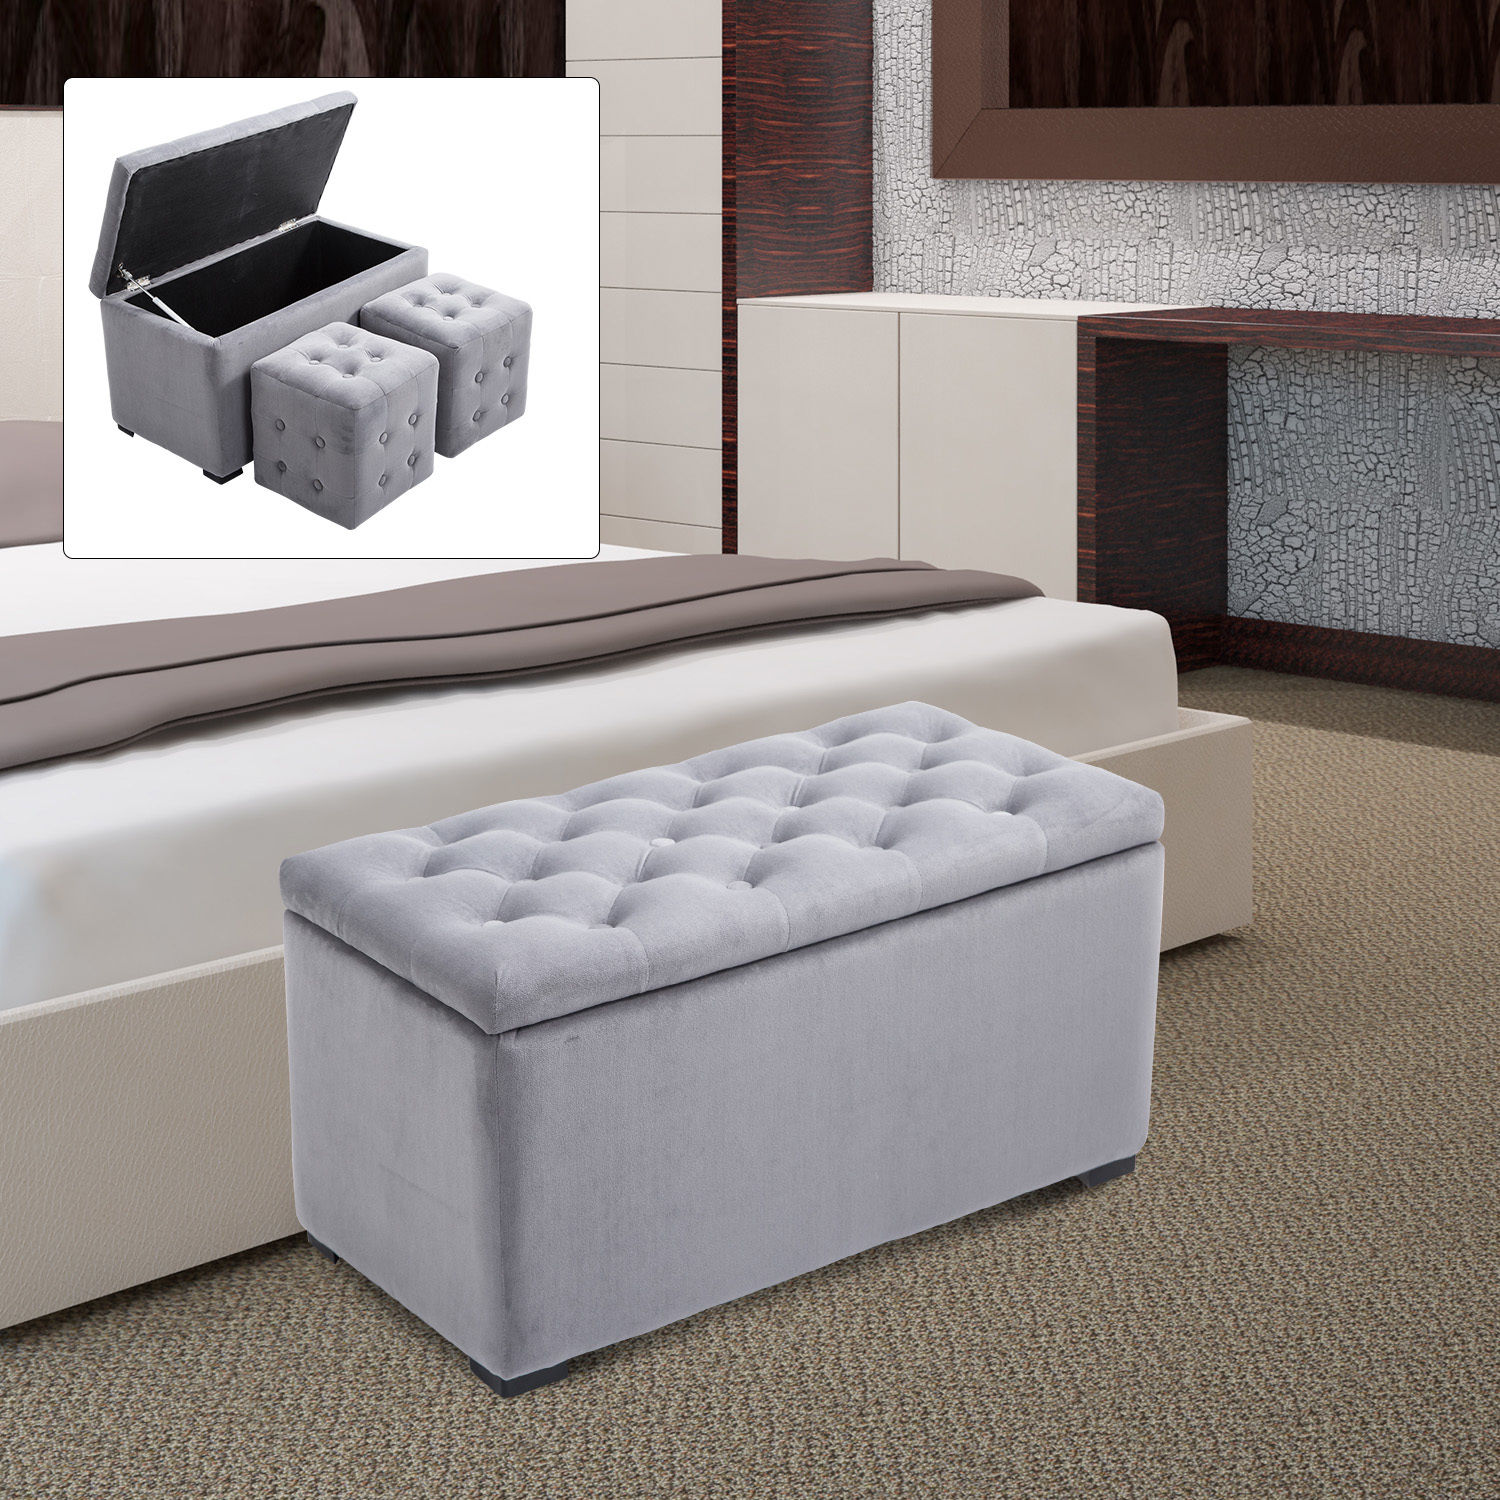 Magnificent Details About 3 Piece Tufted Microfiber Storage Bench With 2 Cube Ottoman Set Home Furniture Ncnpc Chair Design For Home Ncnpcorg